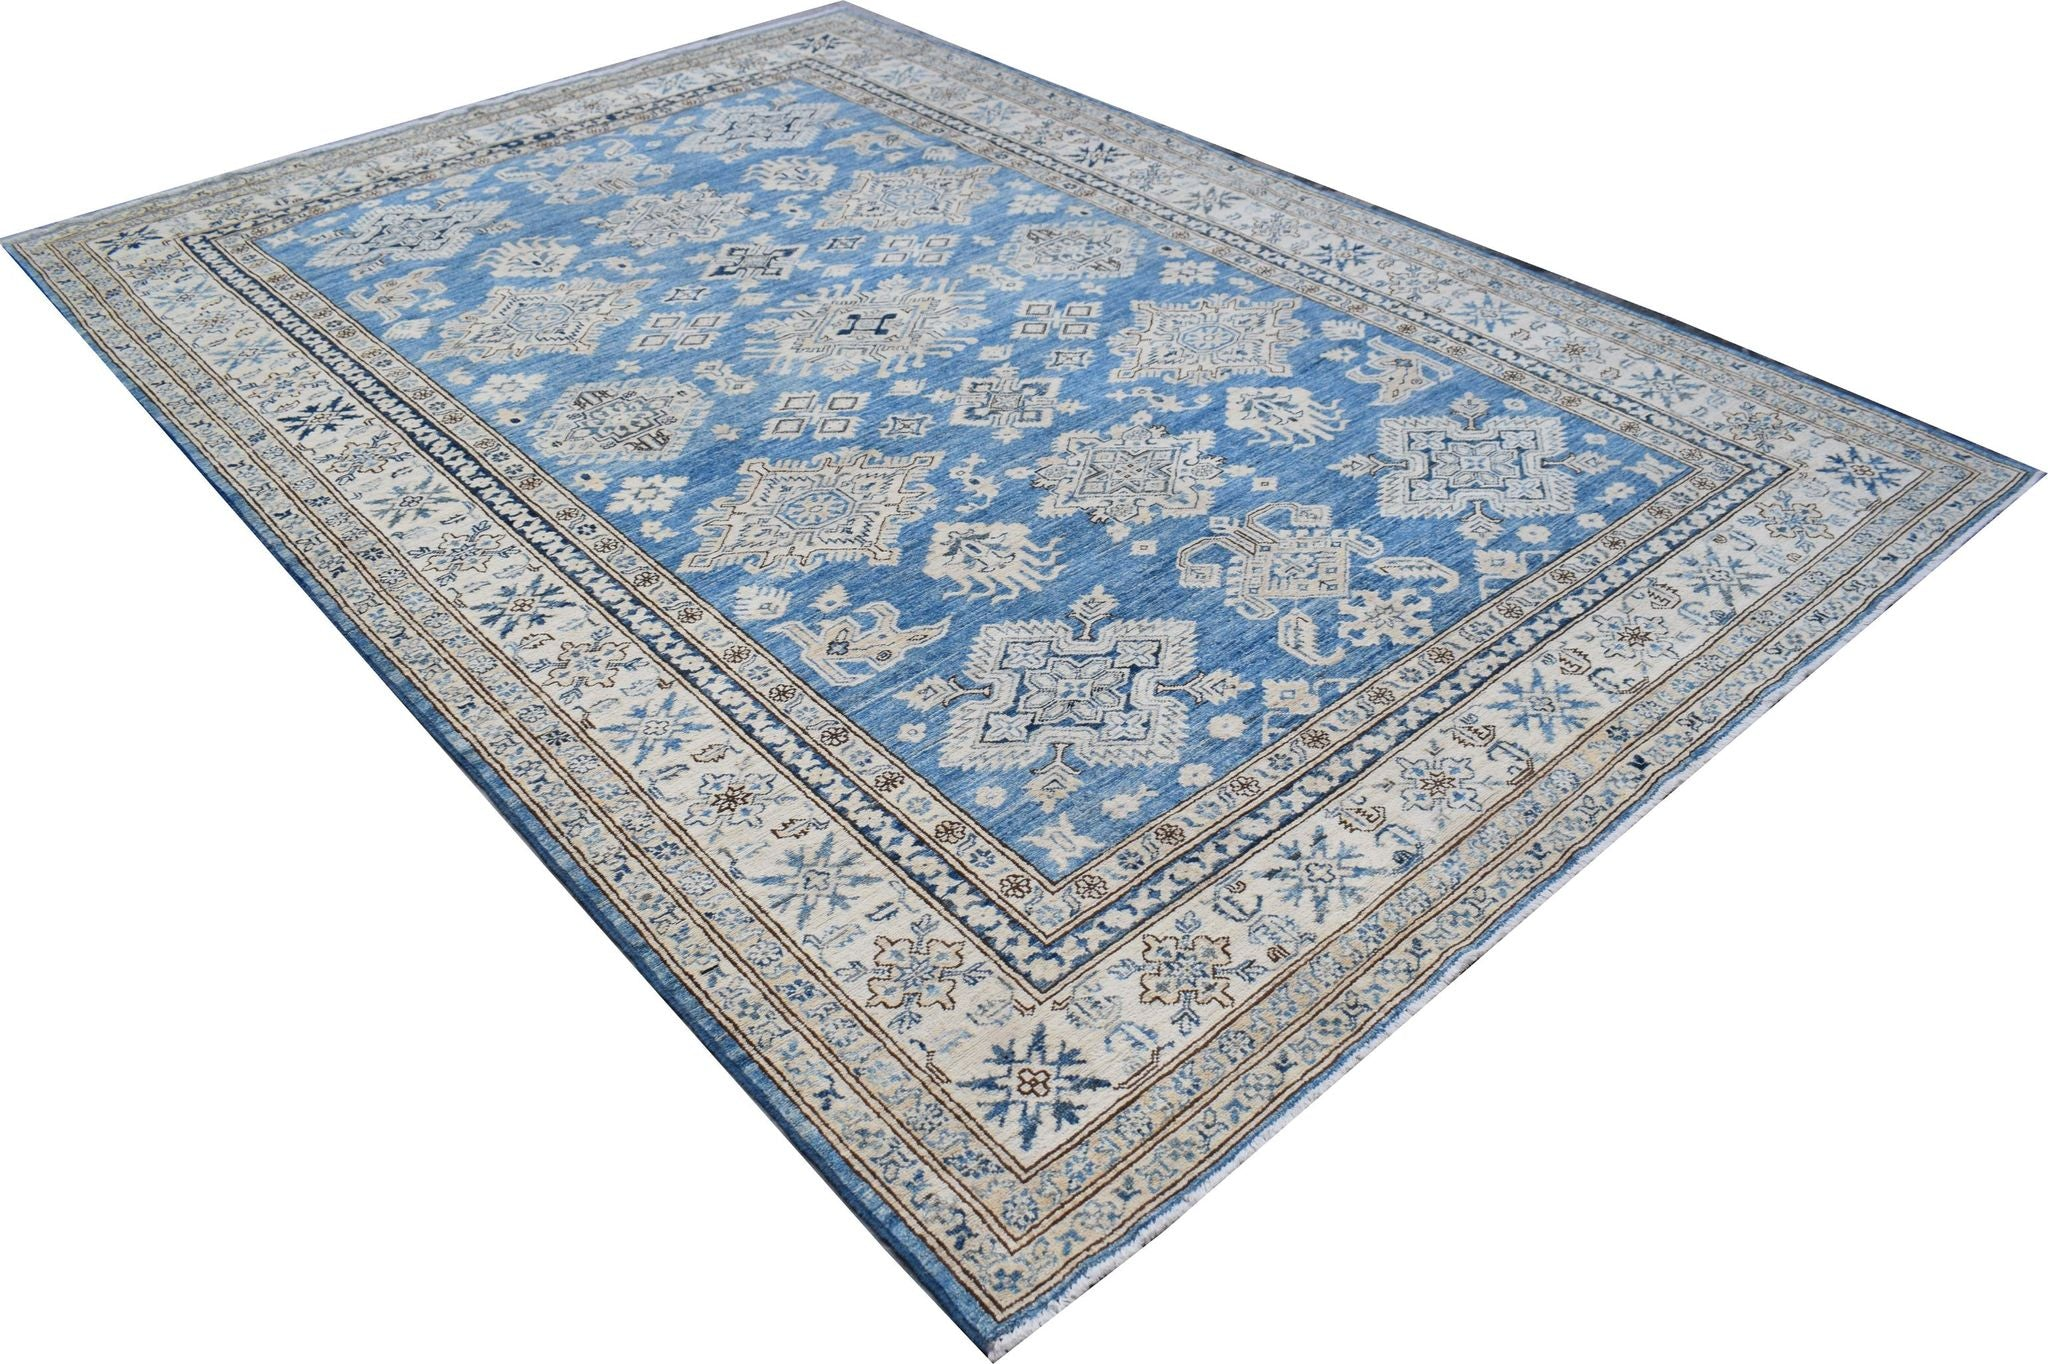 Handmade Afghan Rug in Blue